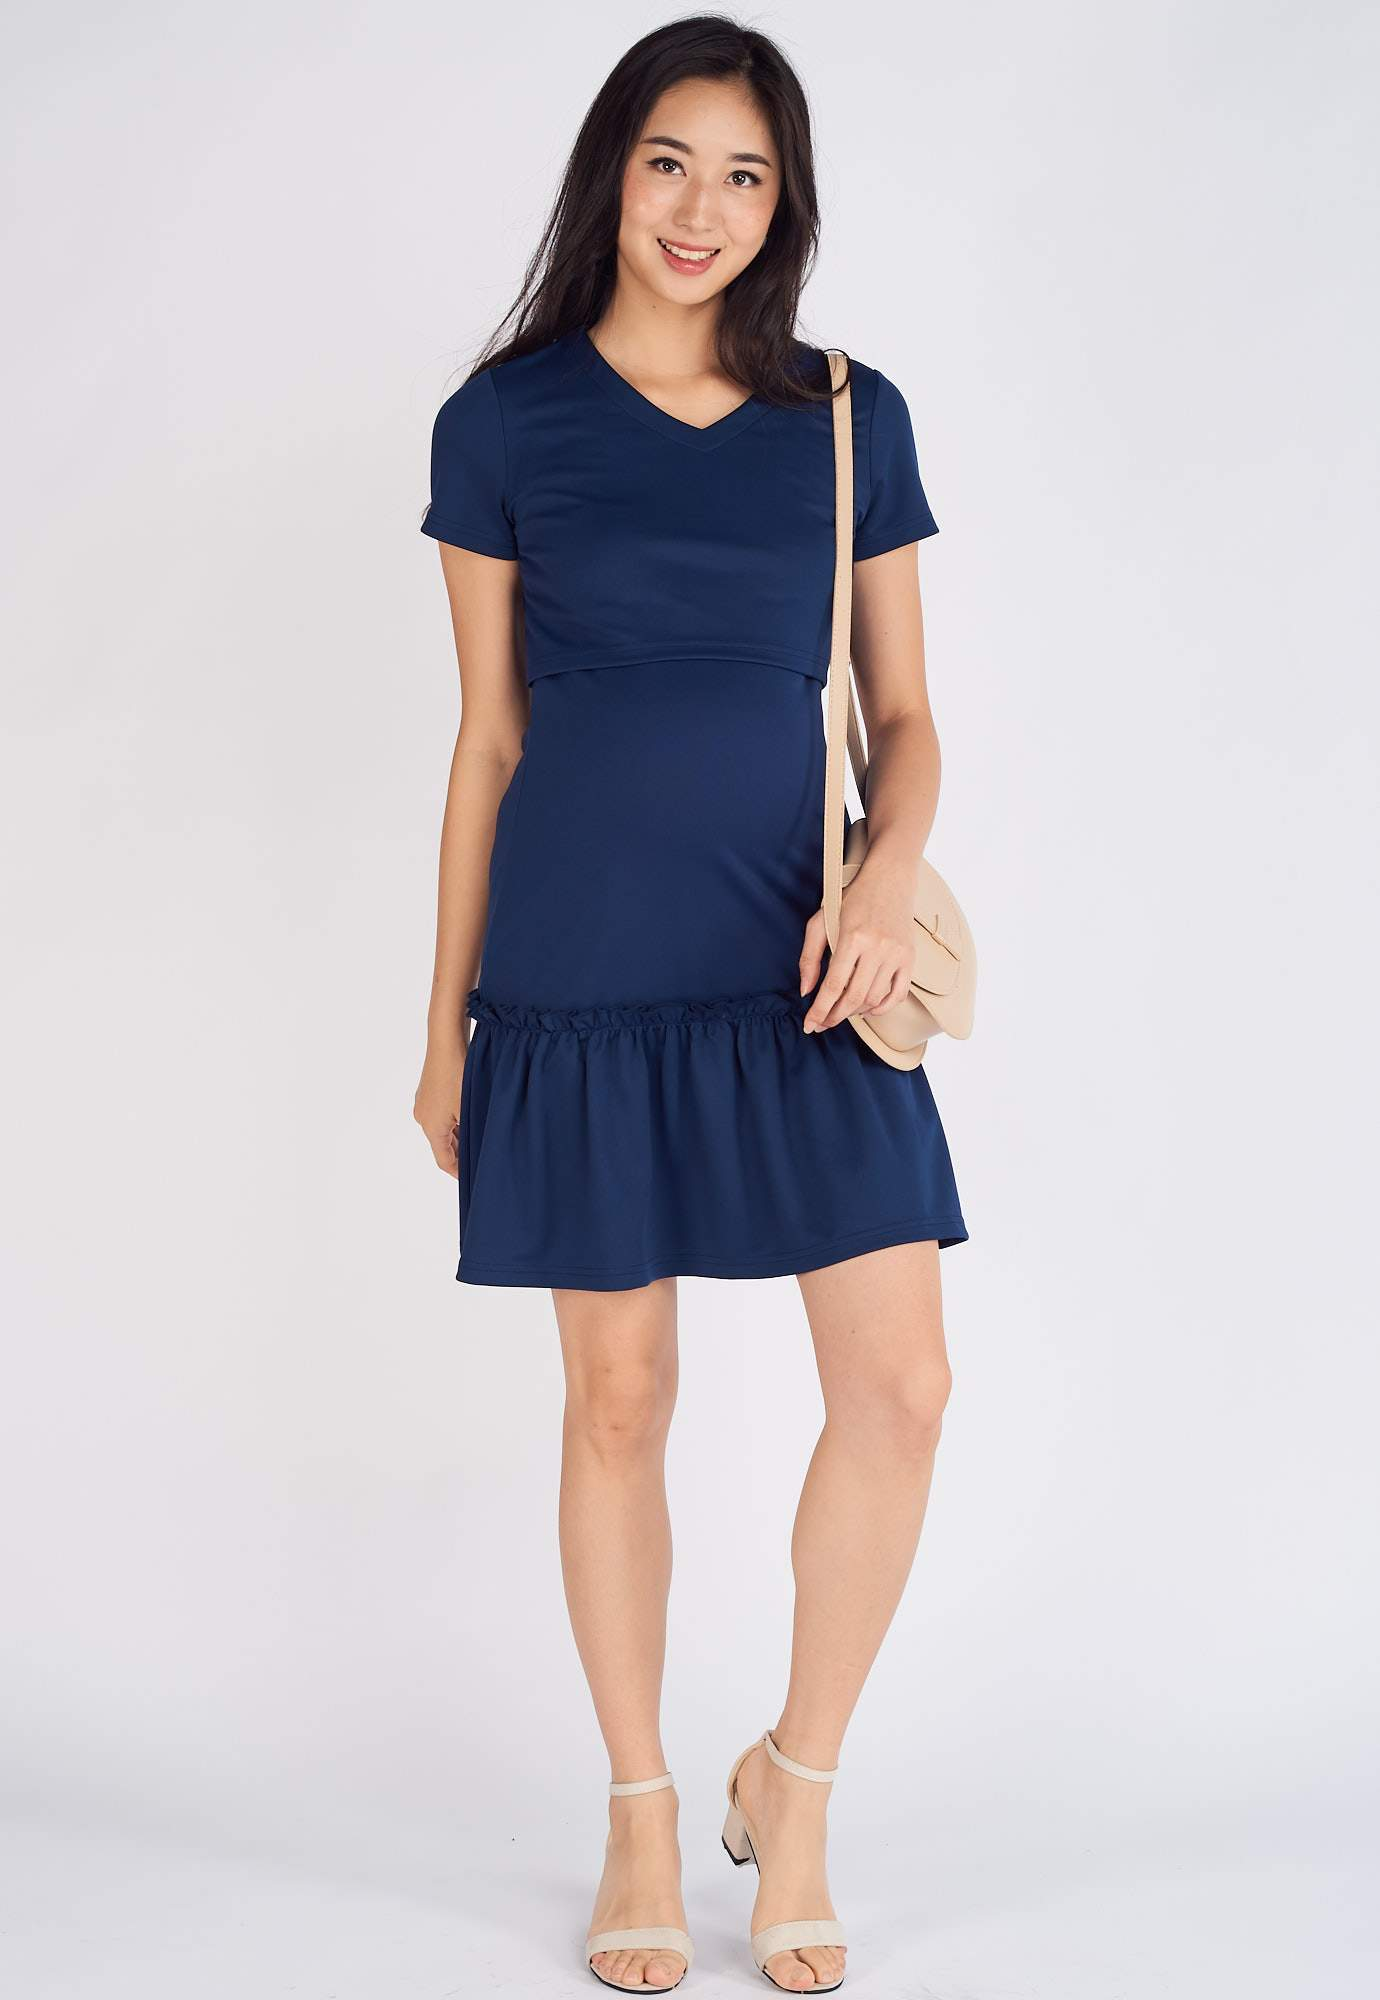 Talia Folded Pleat Hem Dress in Navy  by Jump Eat Cry - Maternity and nursing wear